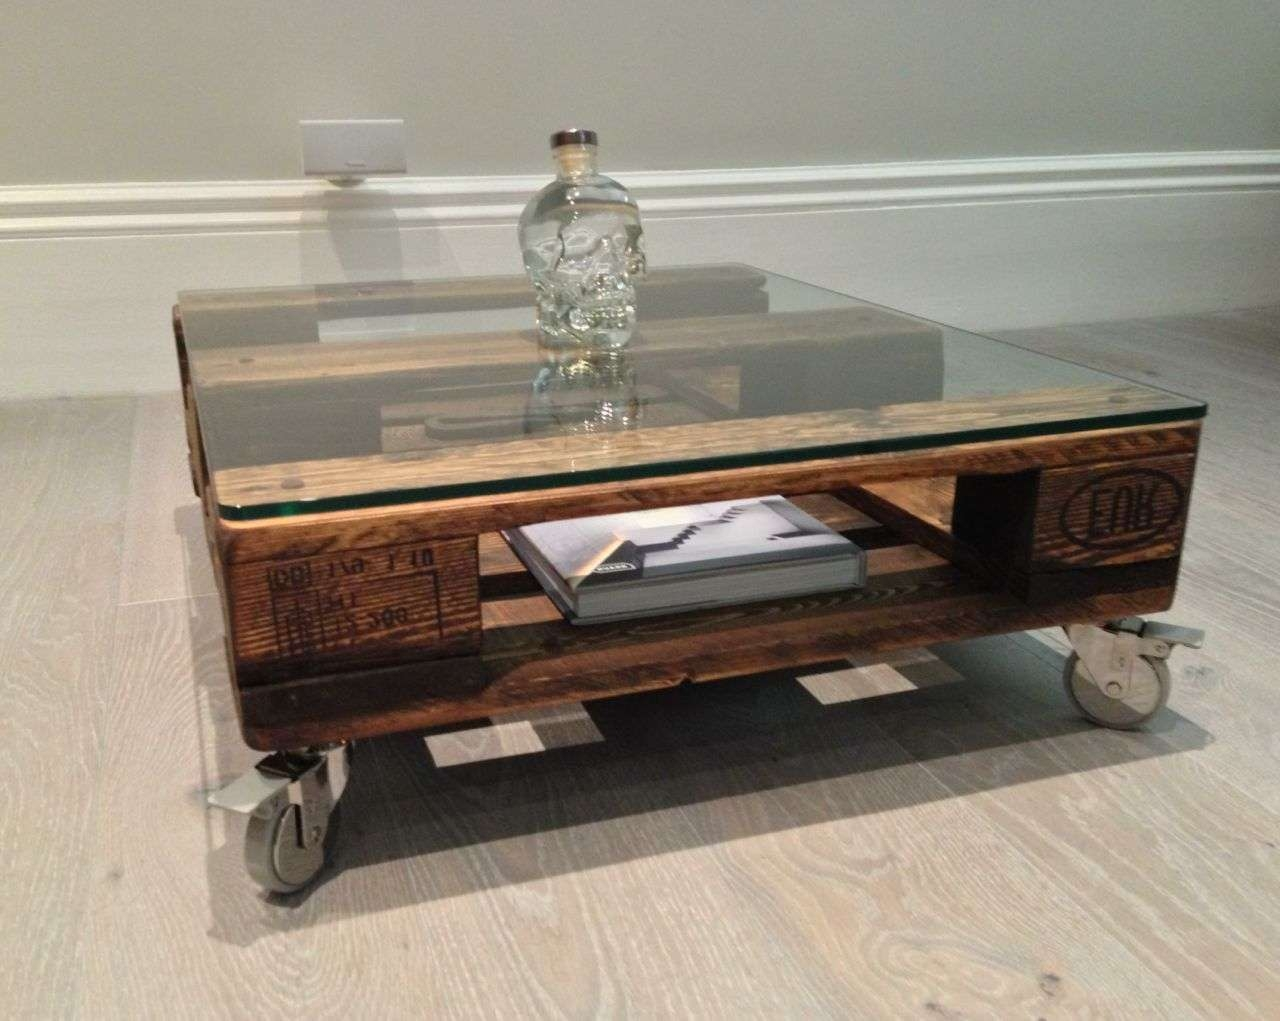 Elegant Glass Top Coffee Table Furniture Inspiration Ideas Simple Intended For Most Recent Coffee Tables With Shelf Underneath (View 9 of 20)